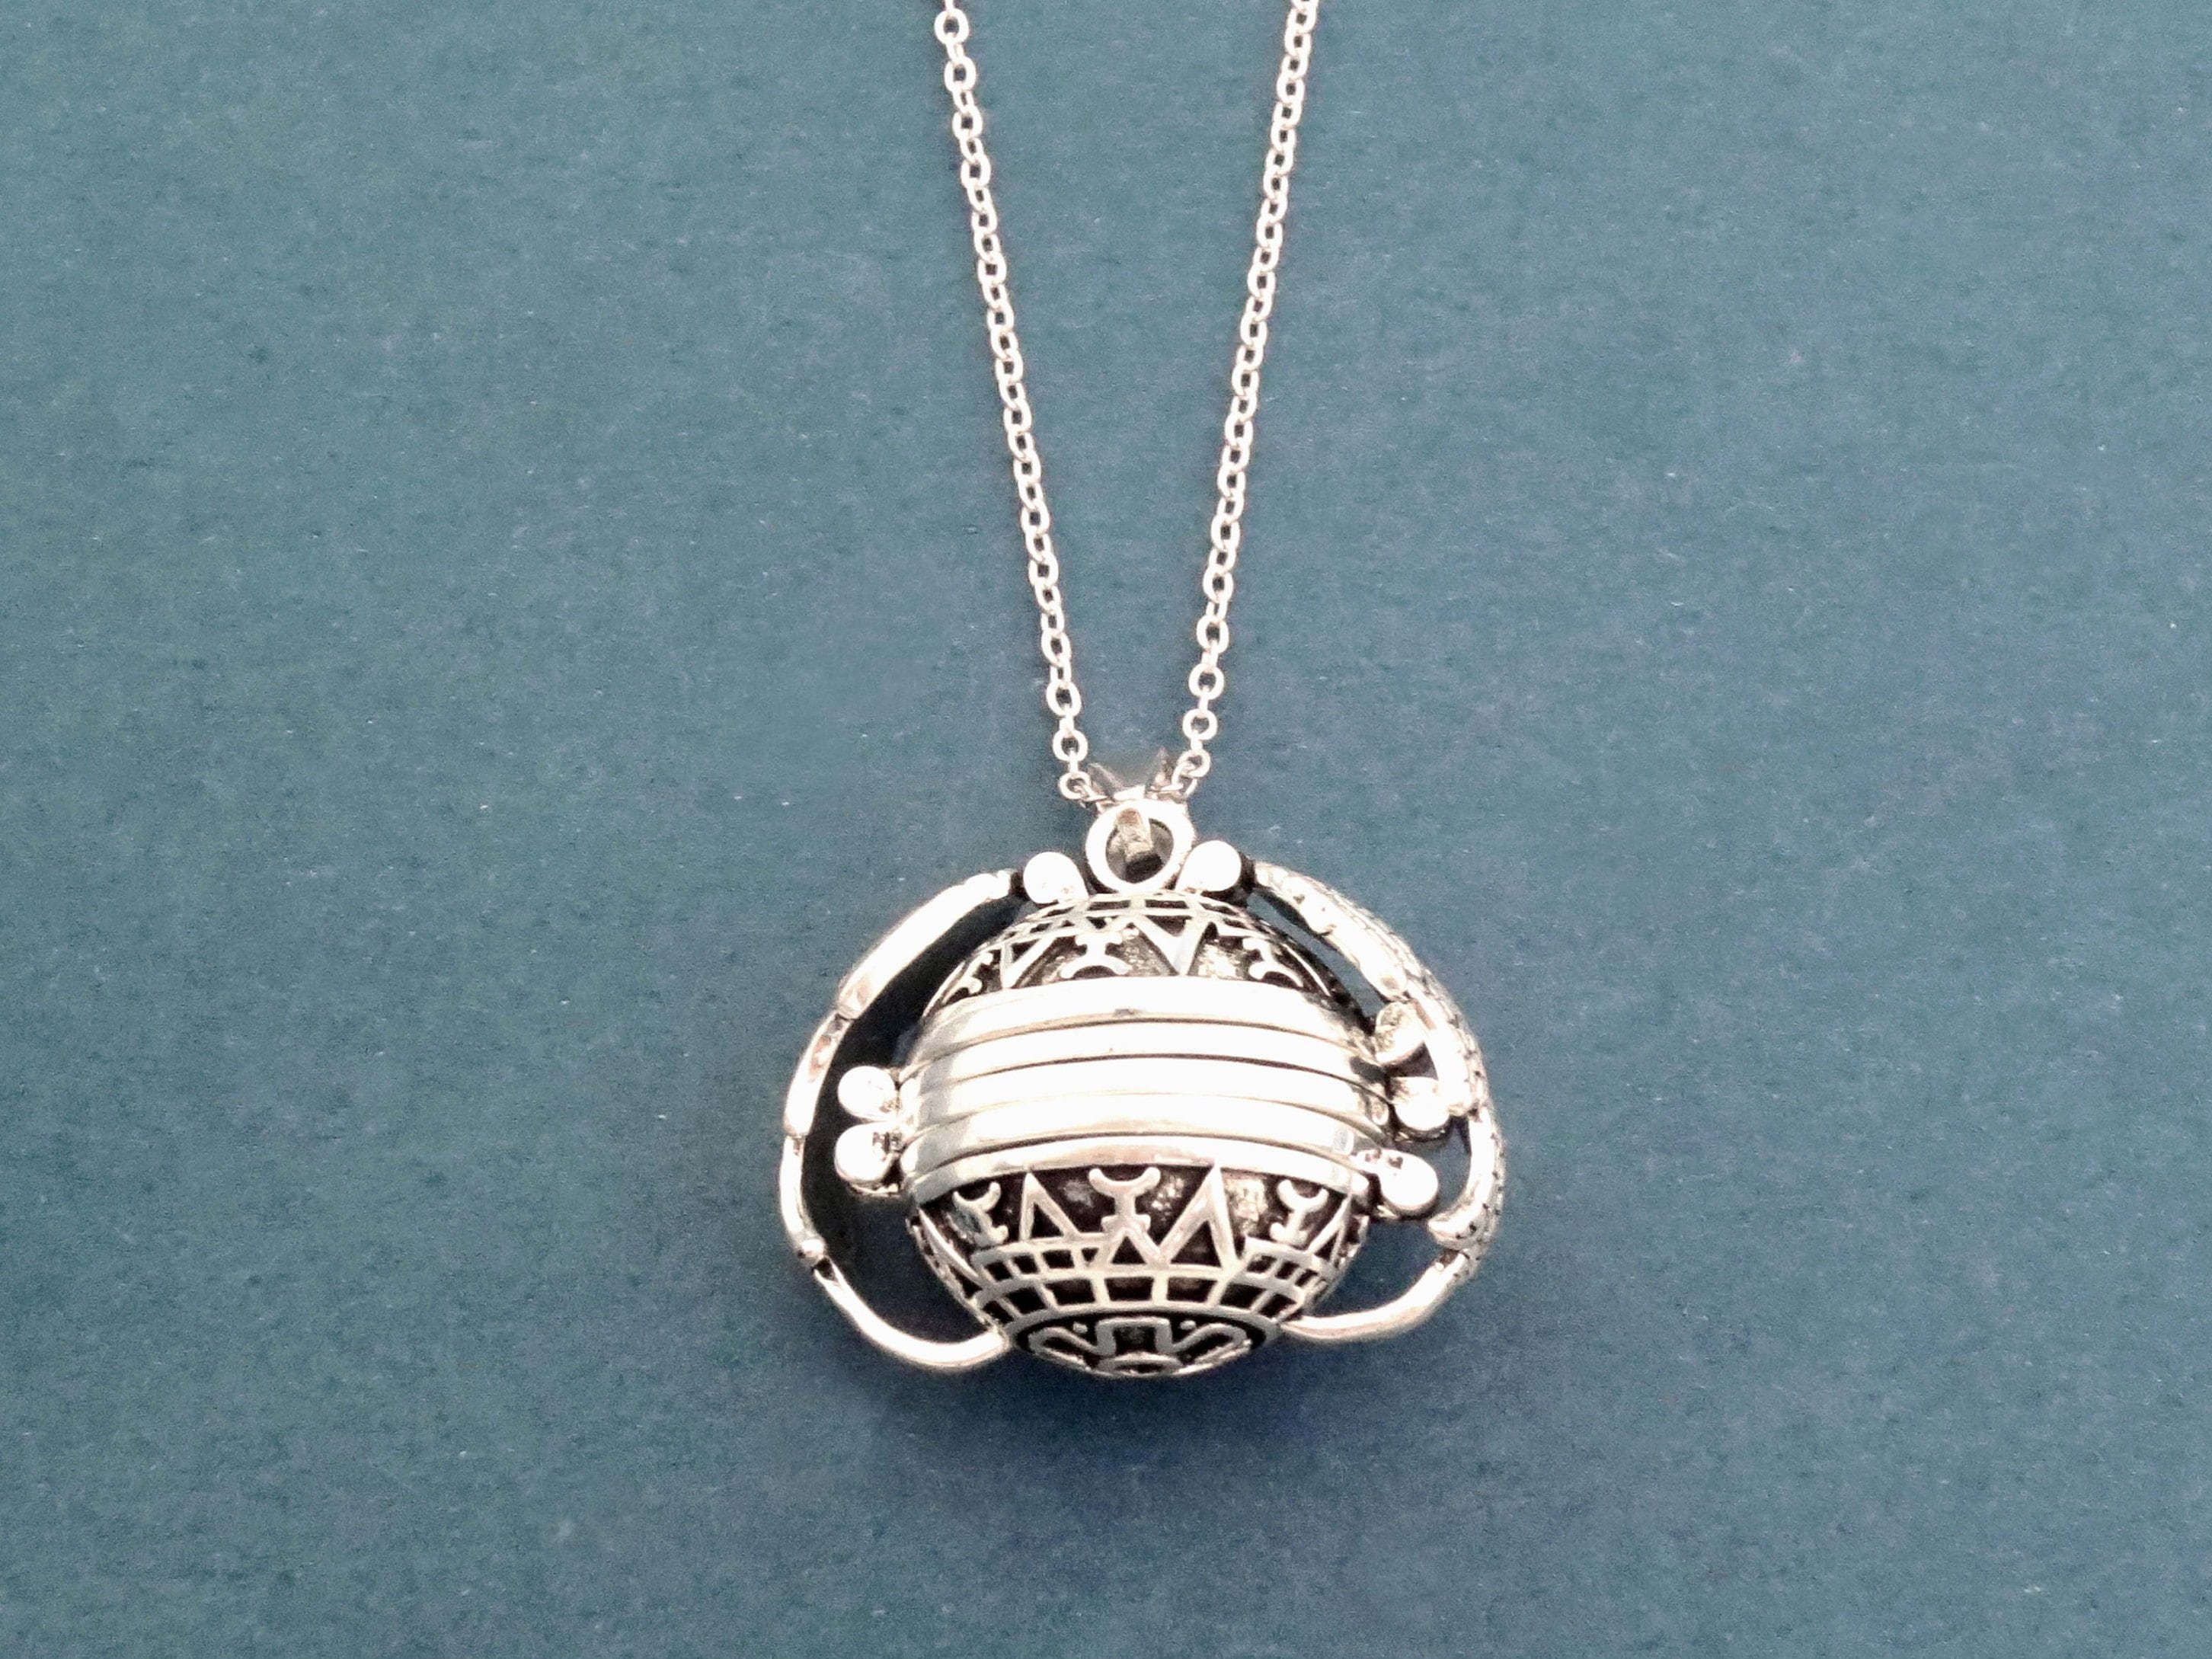 Snitch ball, Locket, 4 Photo frame, Antique, Silver, Necklace